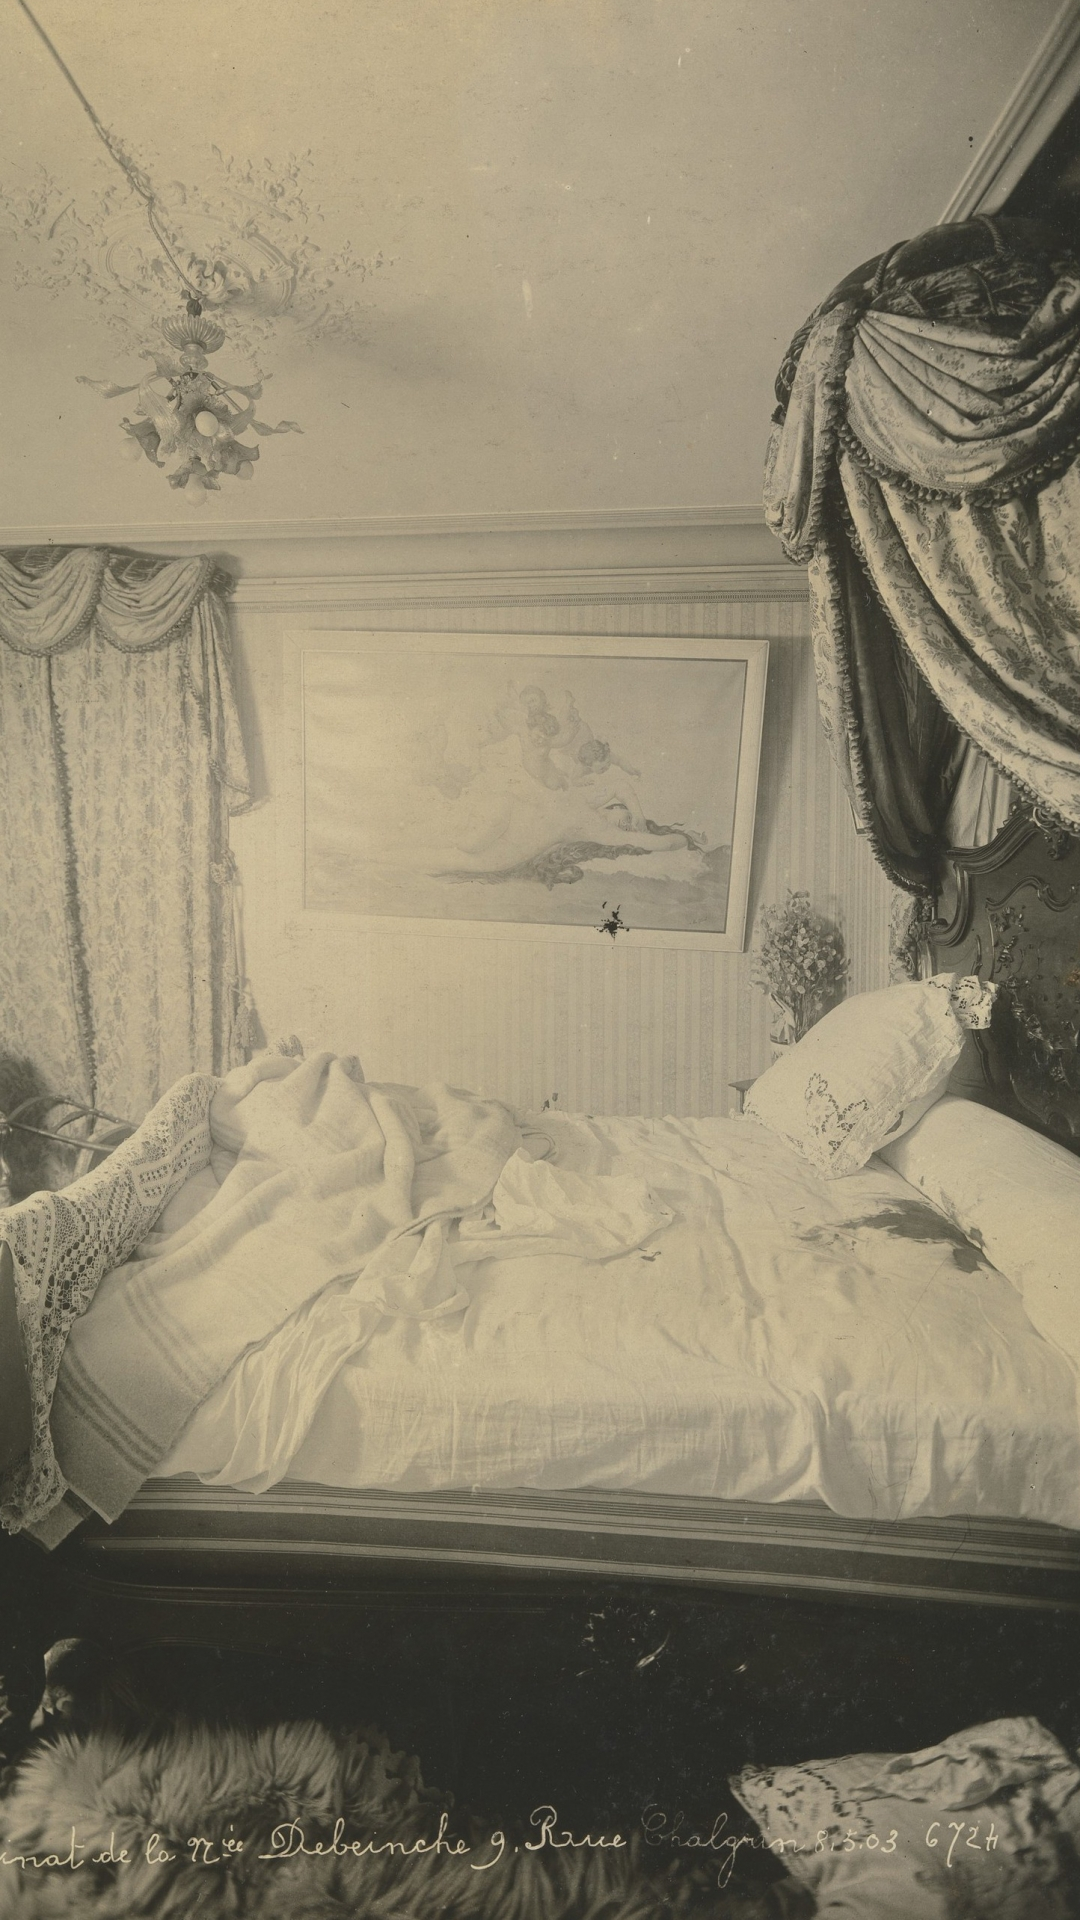 Bedroom of Madame Debeinche, murdered May 5, 1903. From this angle, the scene looks unsettling, with the picture askew and the dark stain on the bed. (Credit: The Metropolitan Museum of Art)